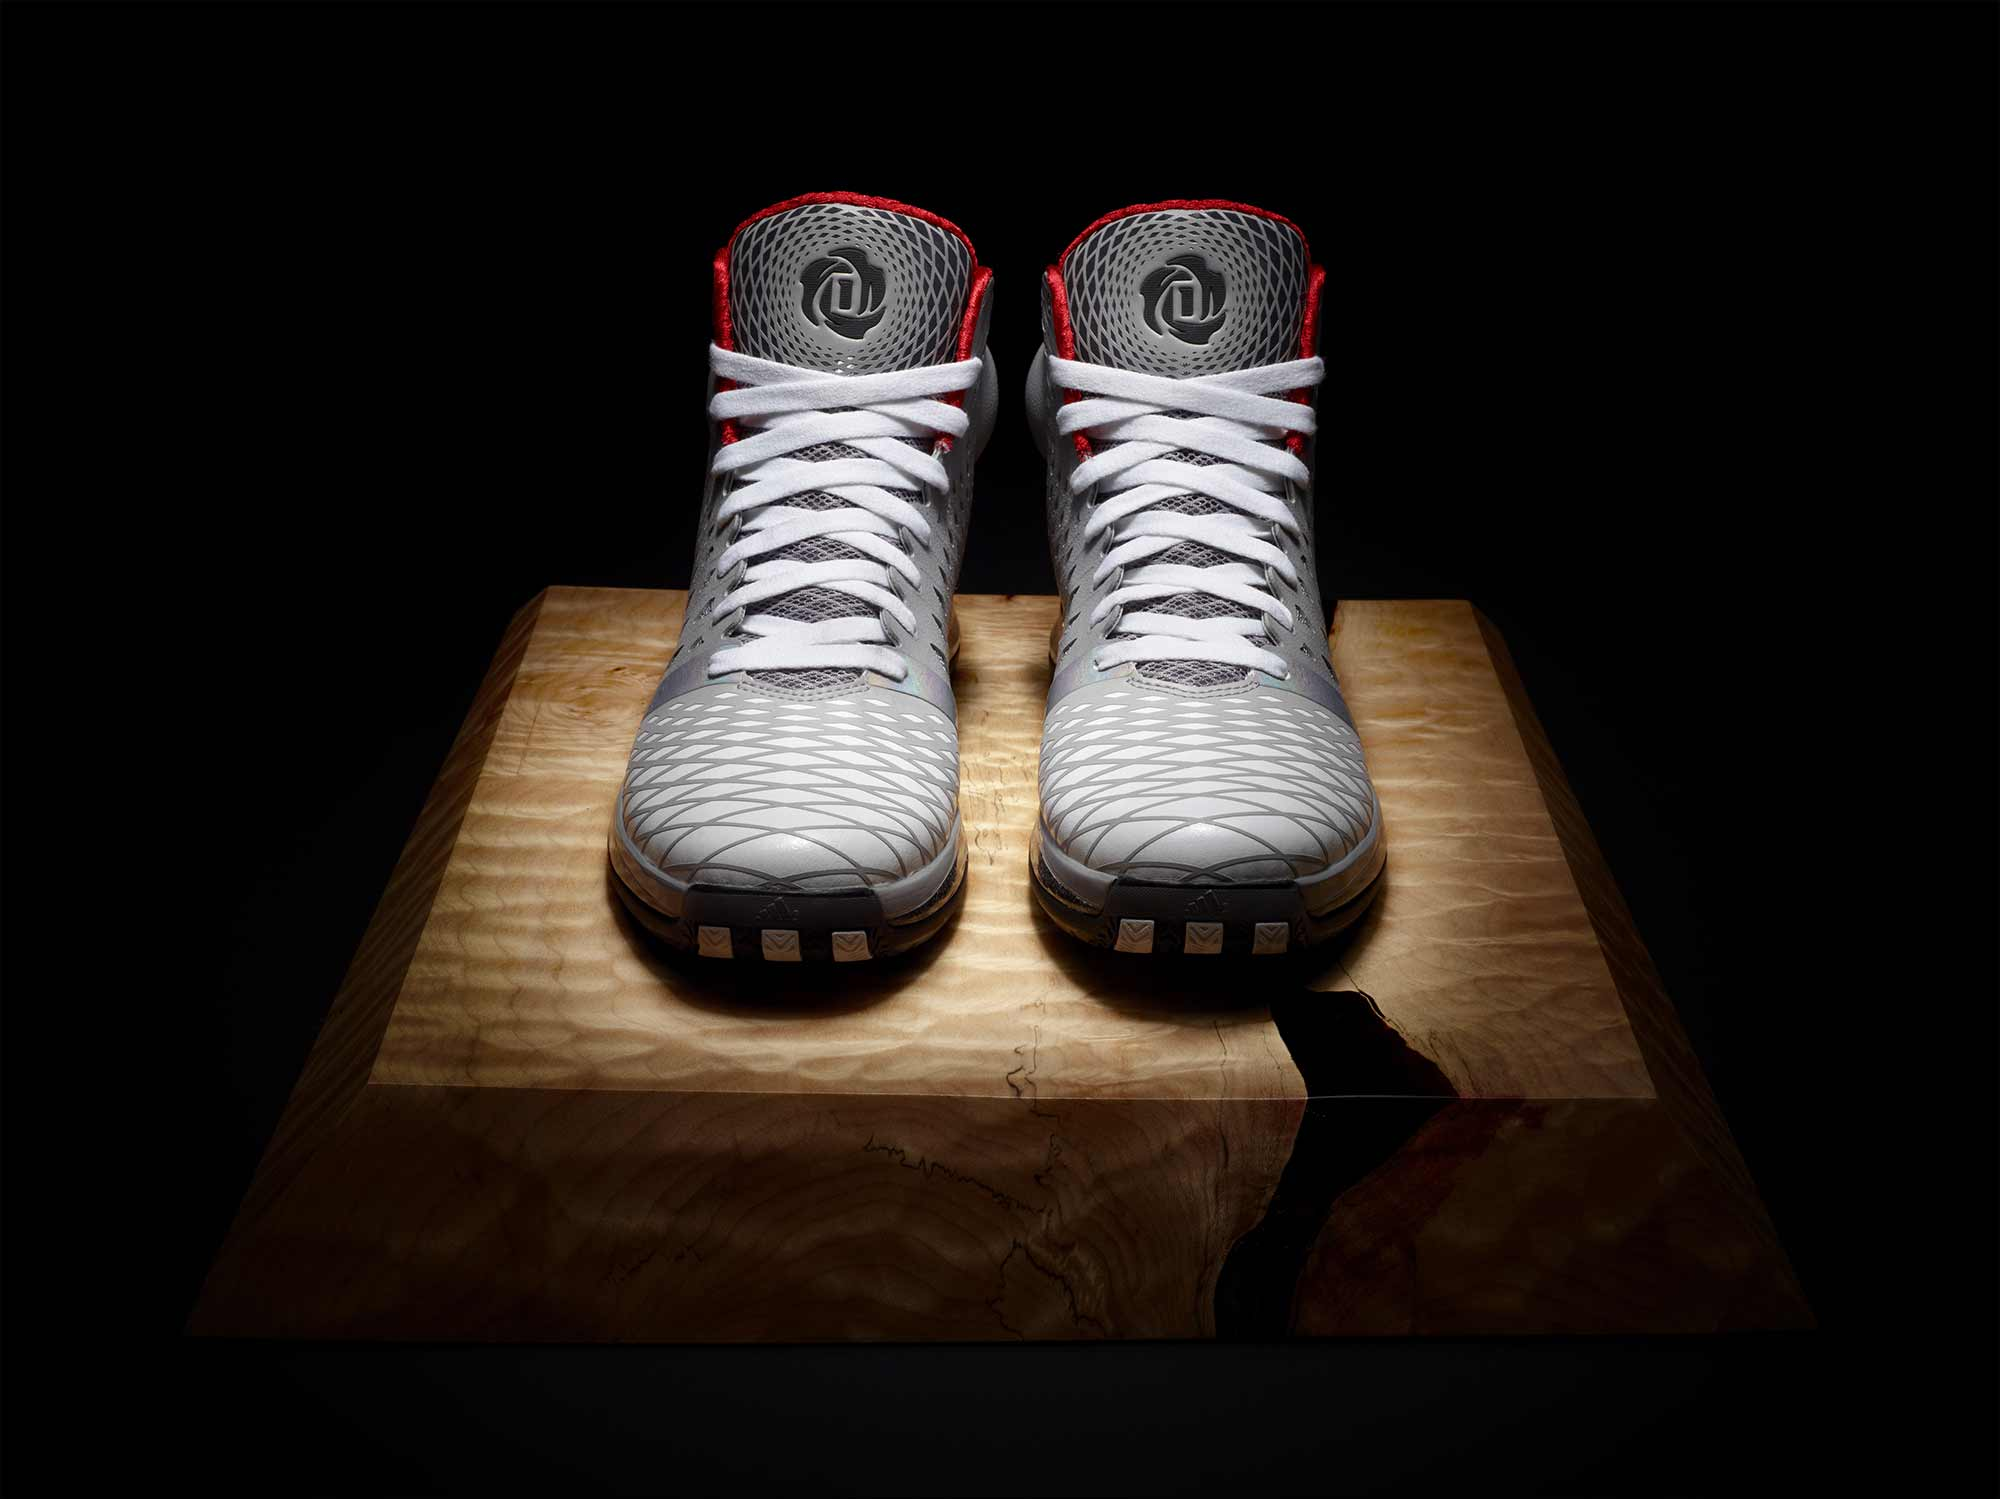 68c61b63c0a0 adidas and Derrick Rose launch D Rose 3.5 Signature Basketball Shoe -  Ballislife.com